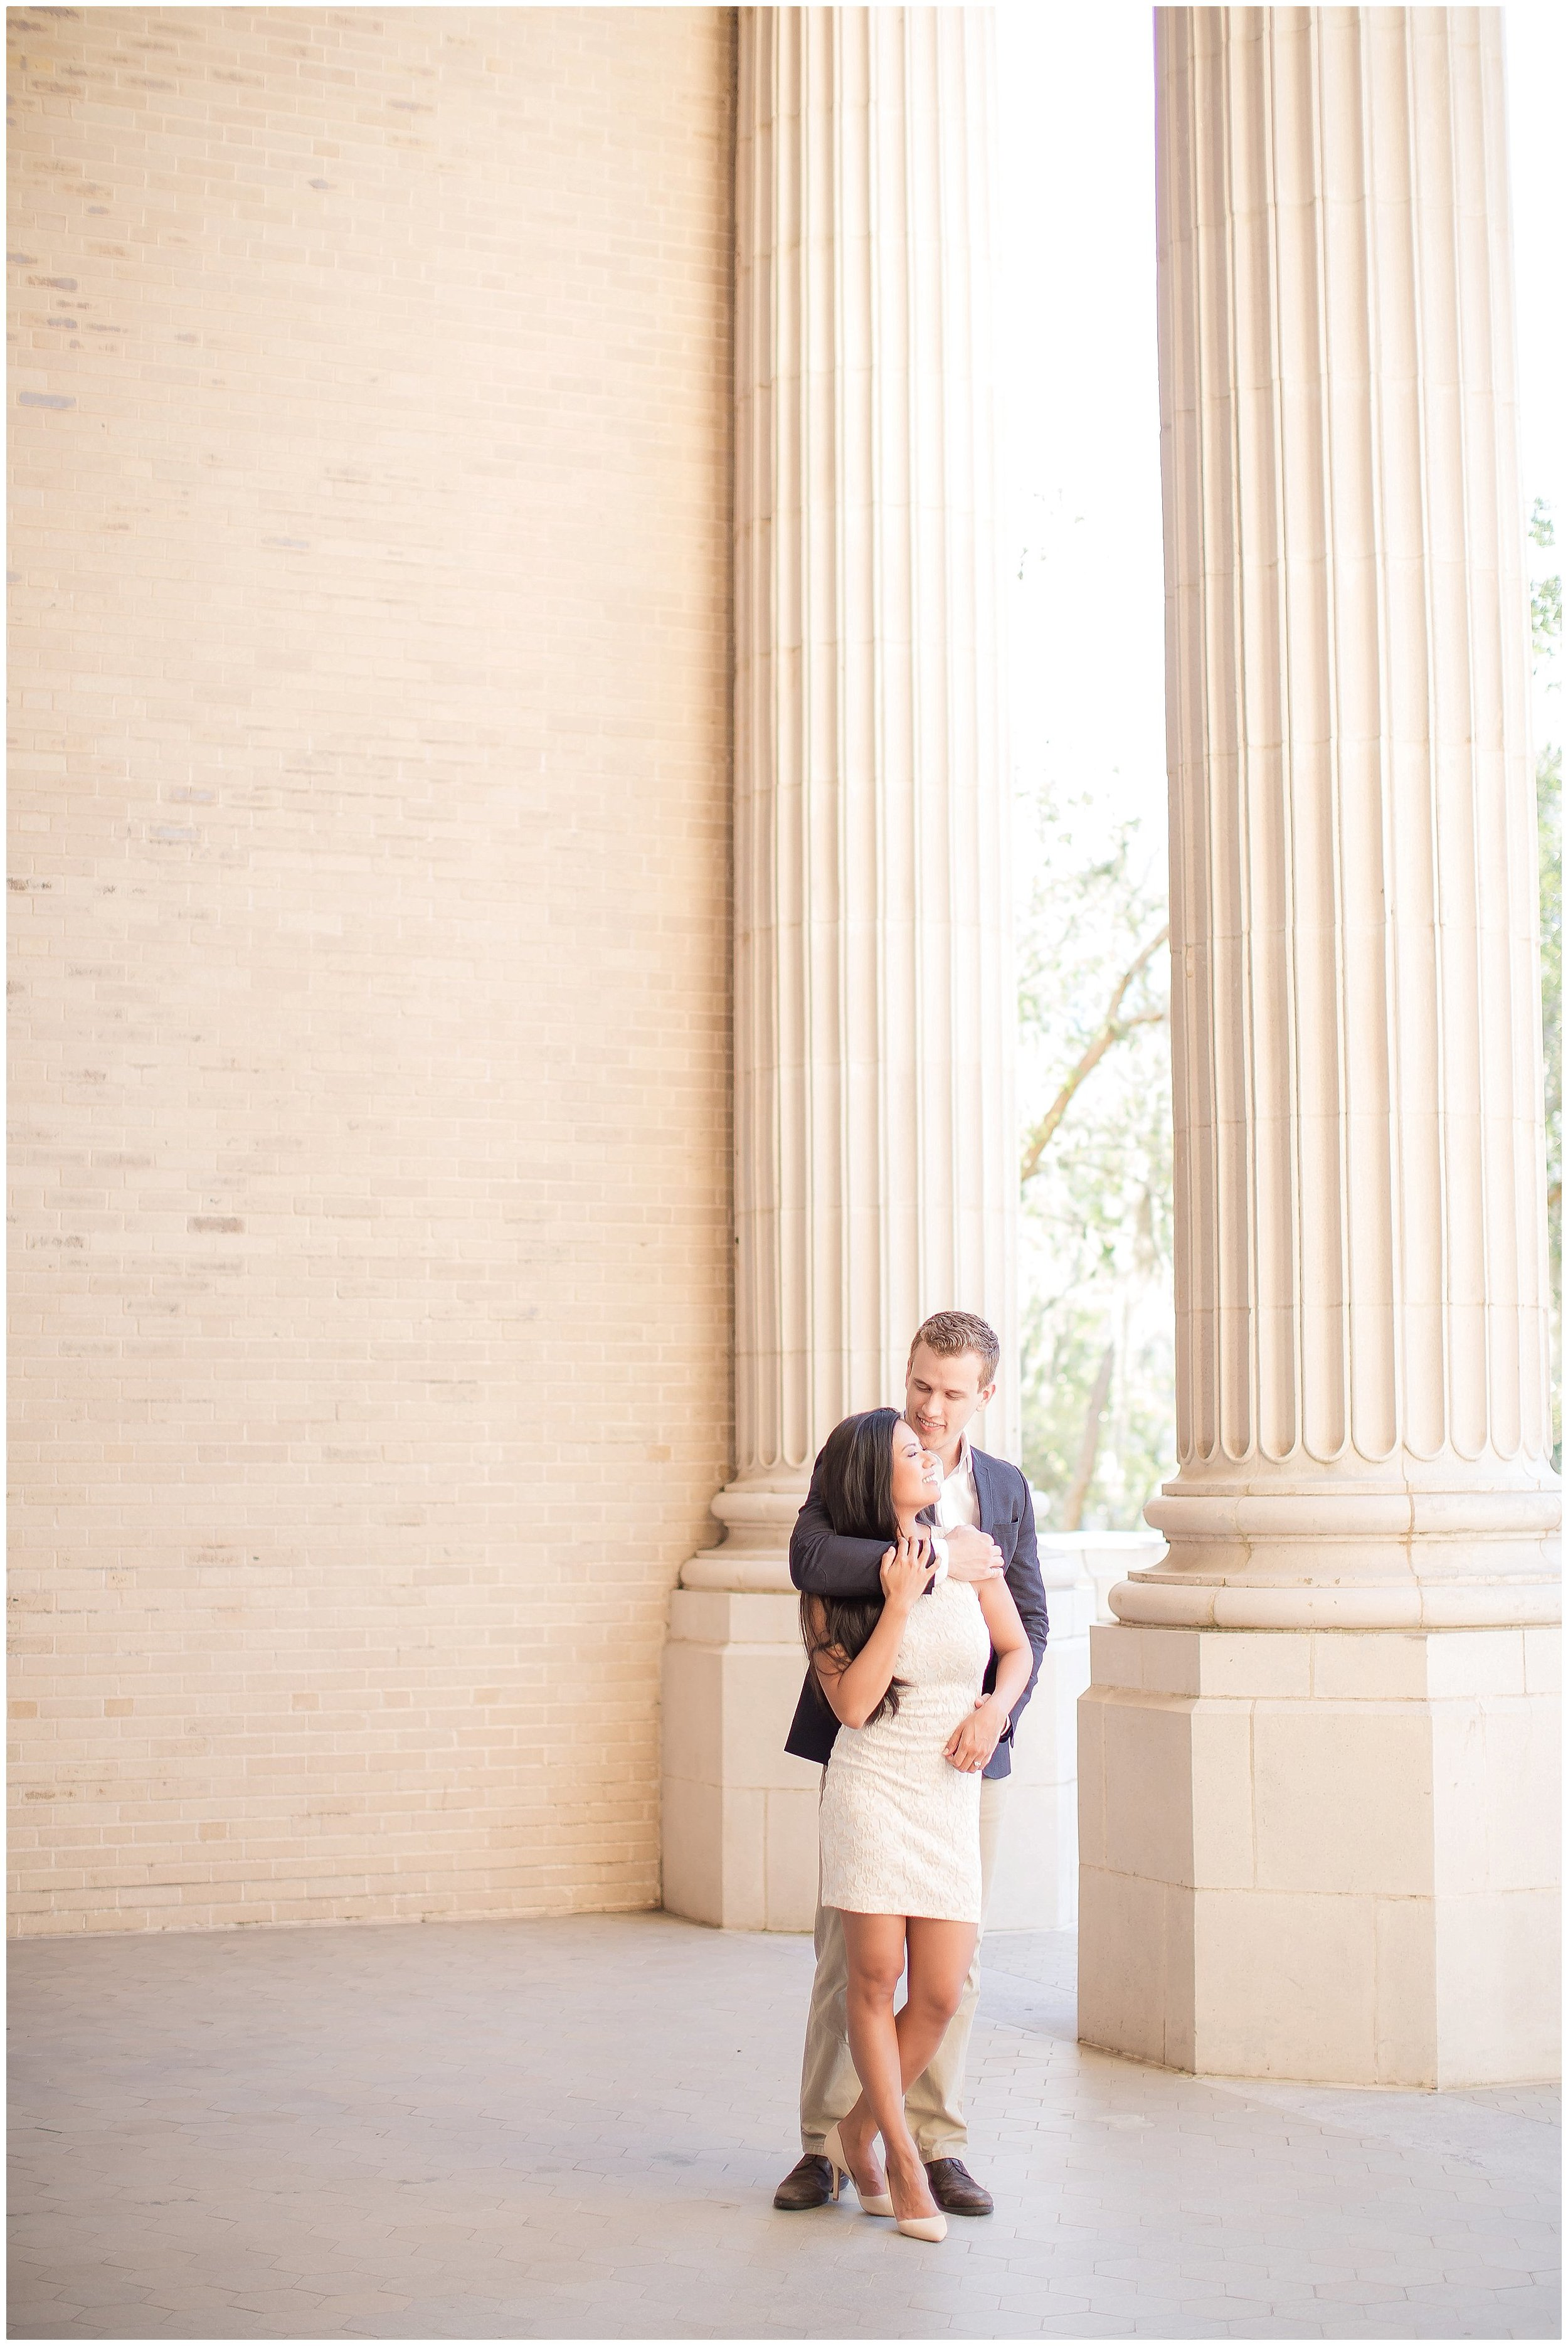 Old Courthouse Downtown DeLand Engagement Session